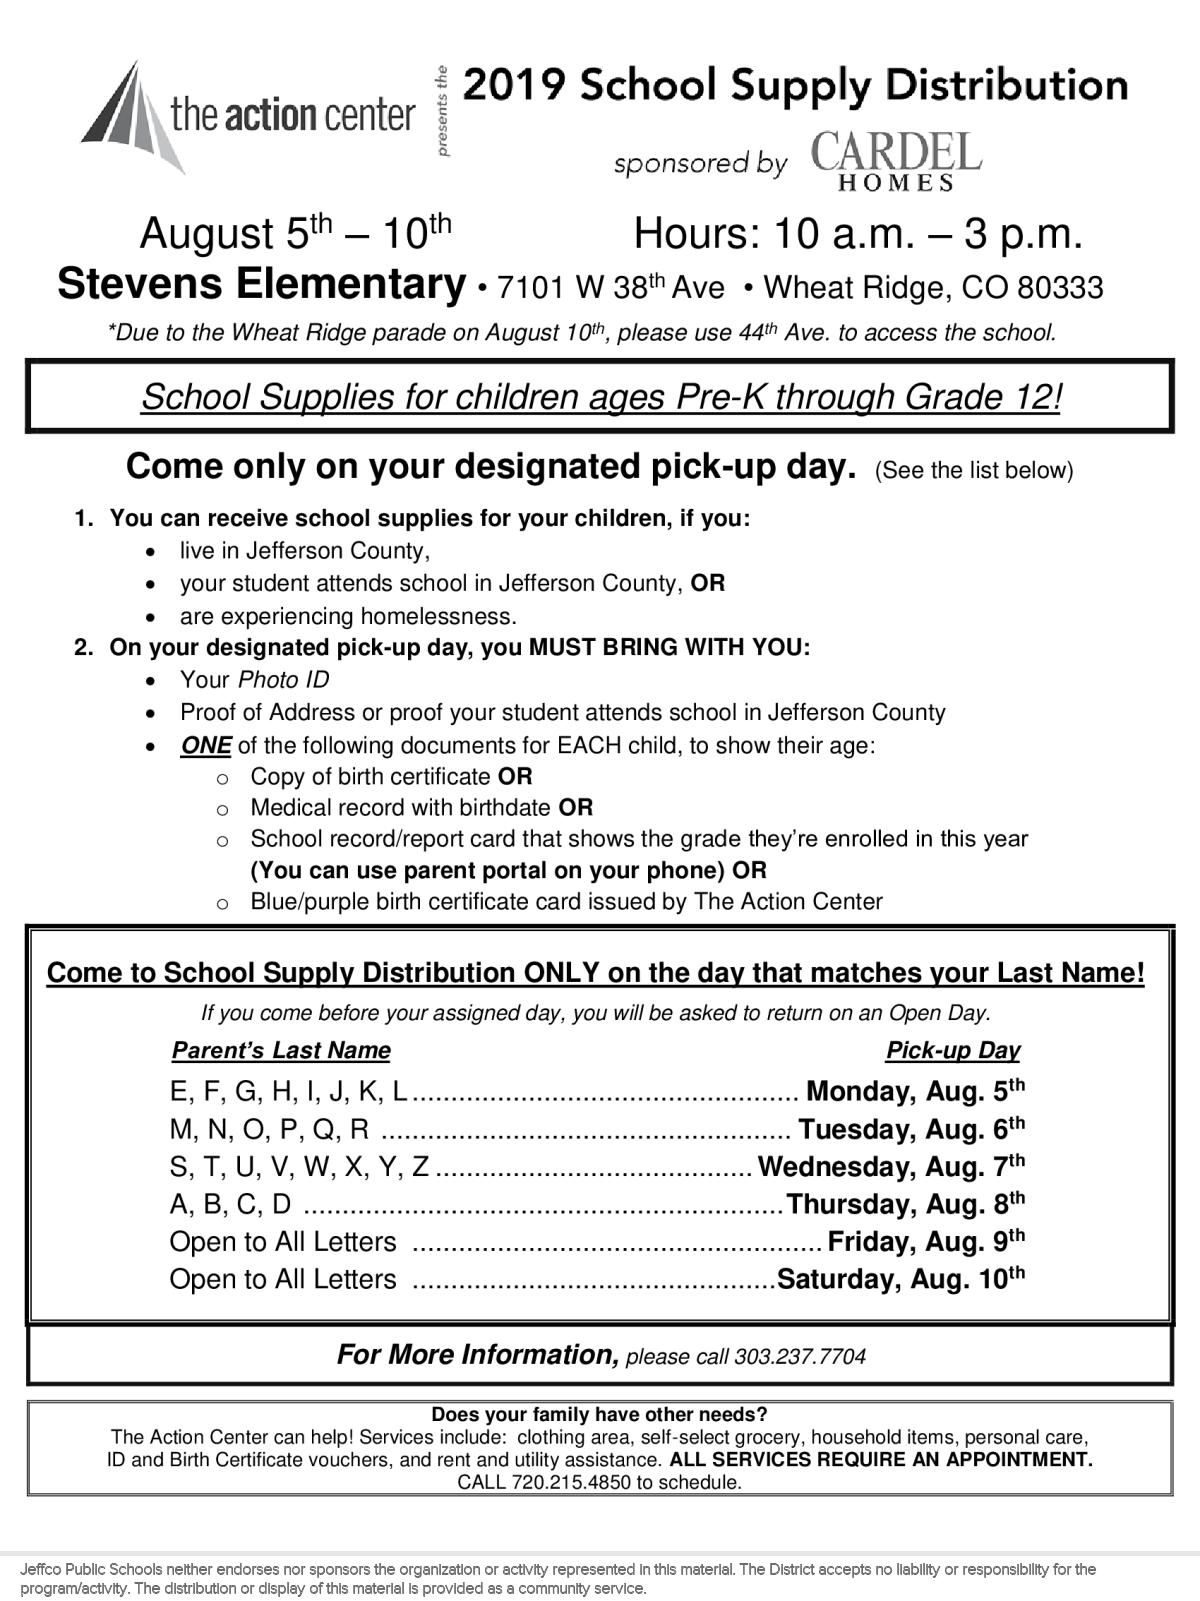 Image of a flyer titled The Action Center's School Supply Distribution